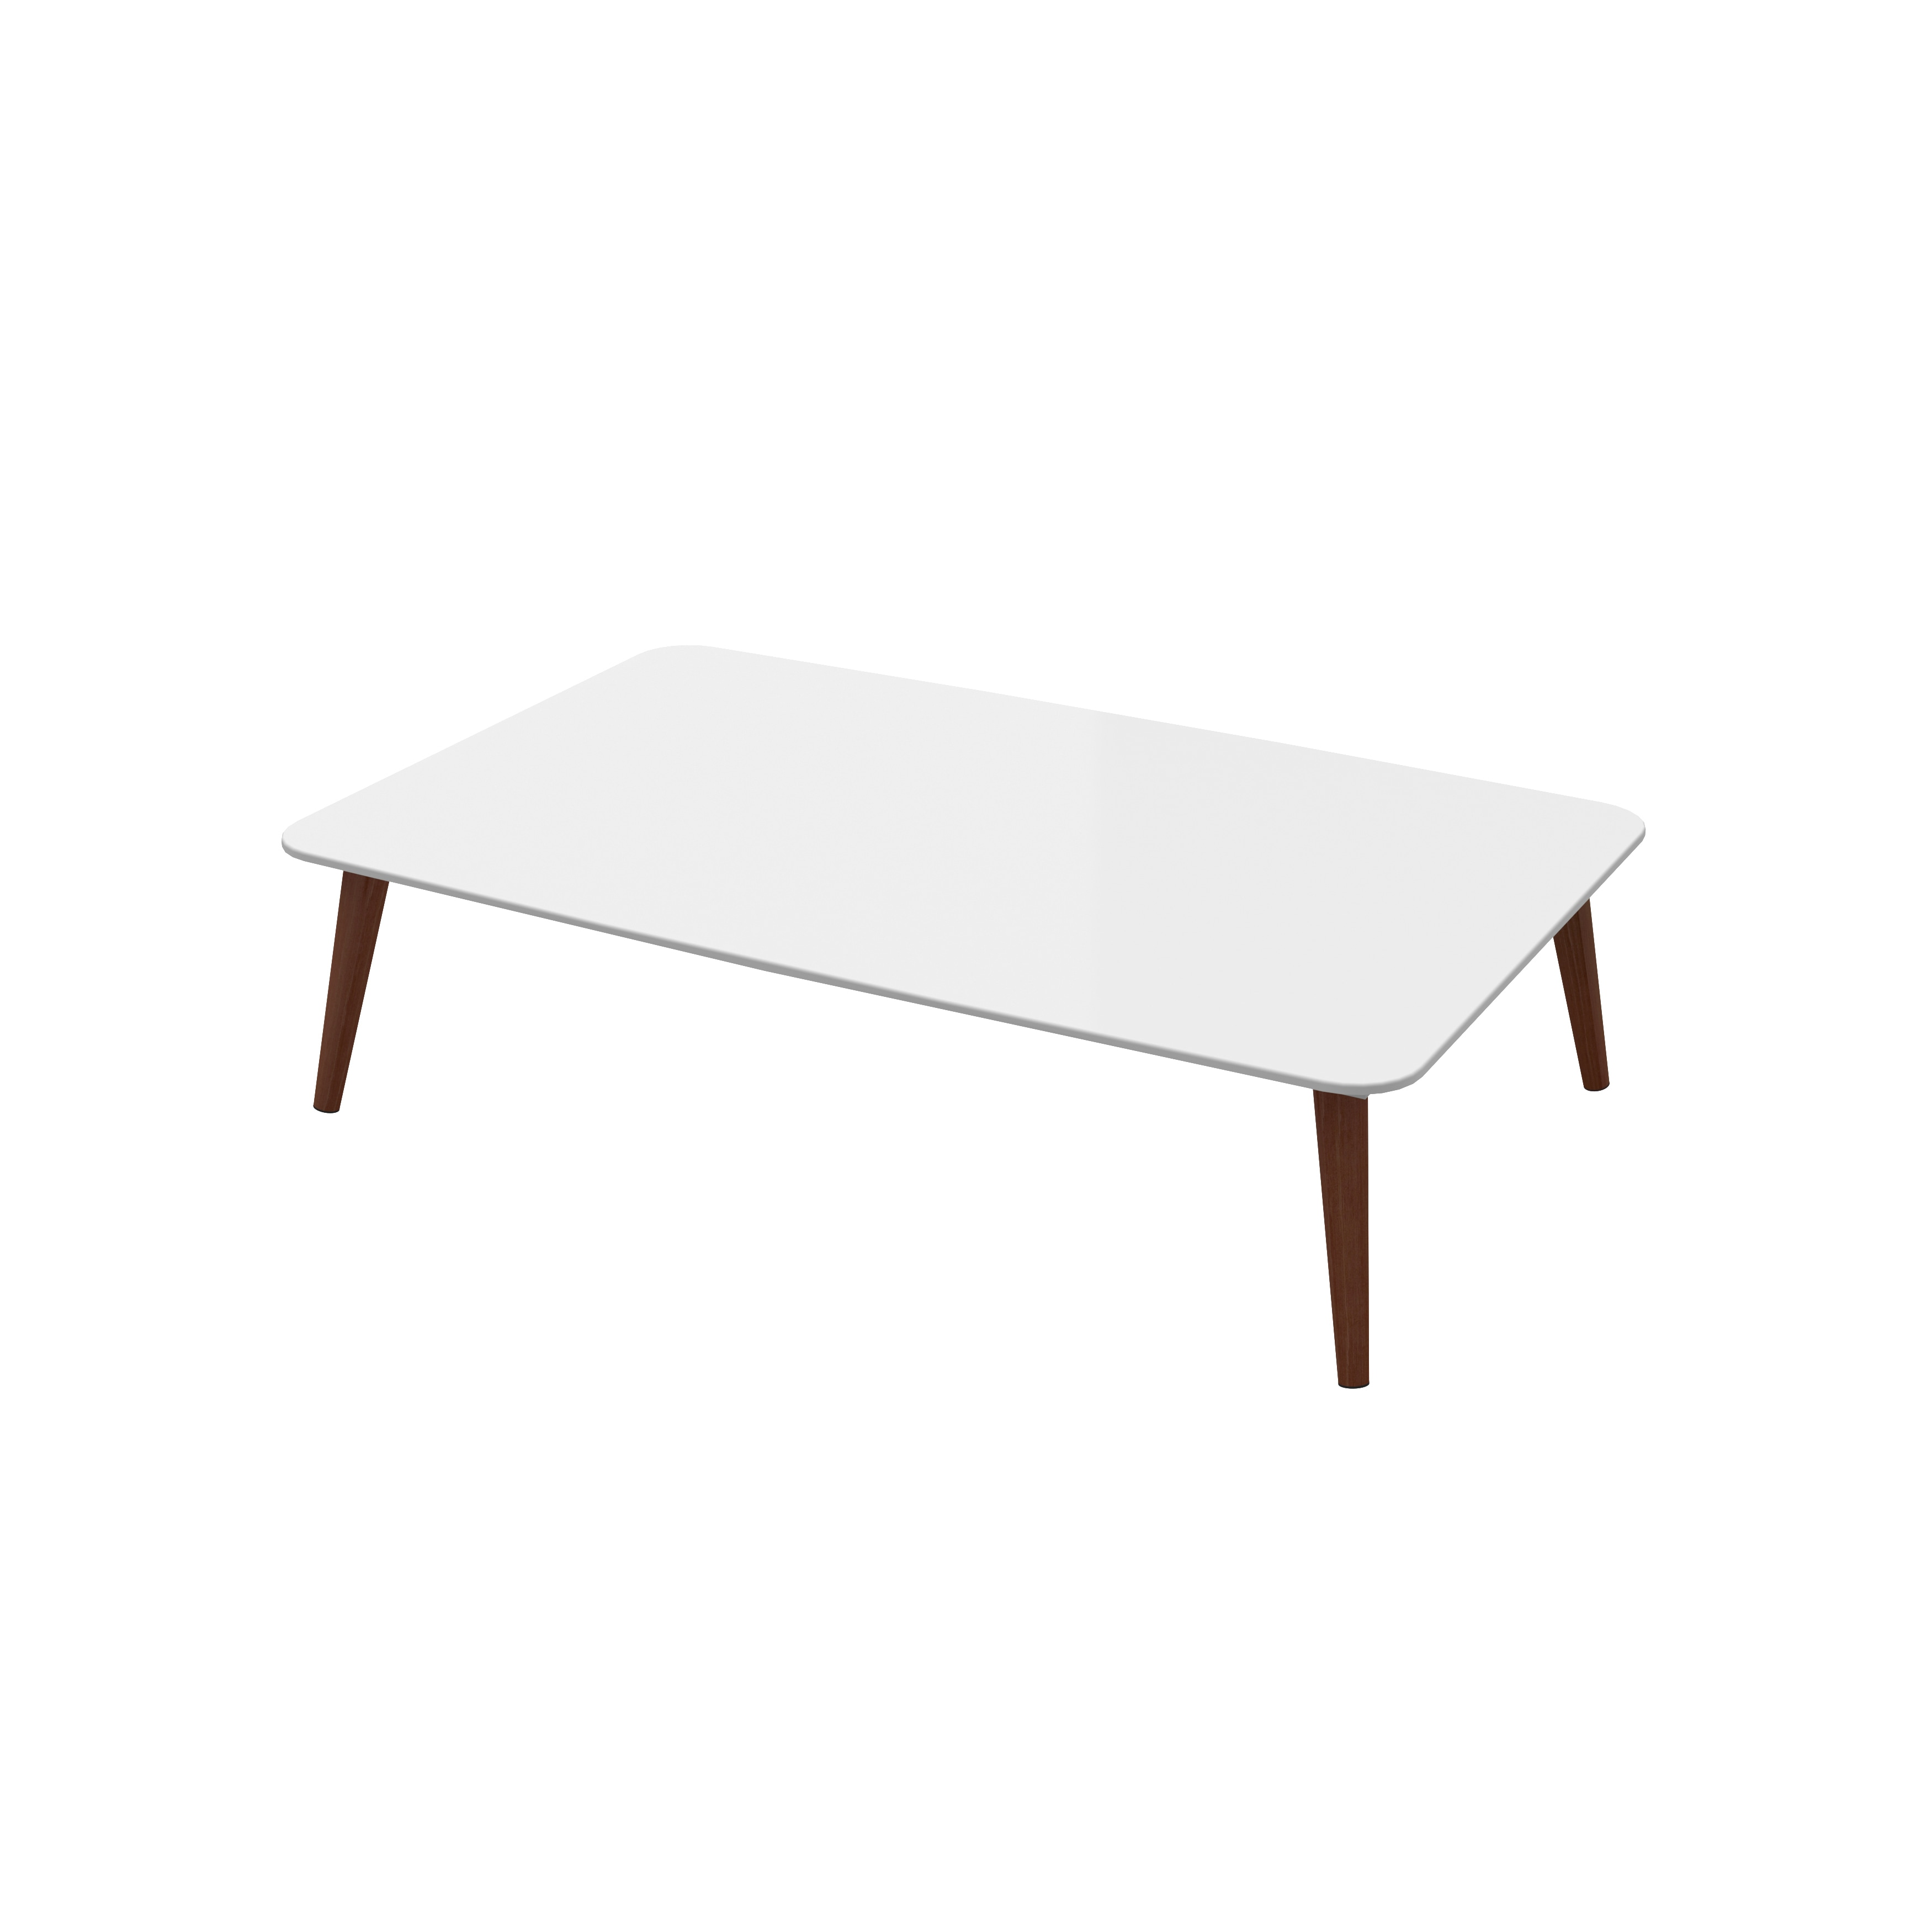 Shop White Lacquer Spindle Legs Mid Century Coffee Table On Sale